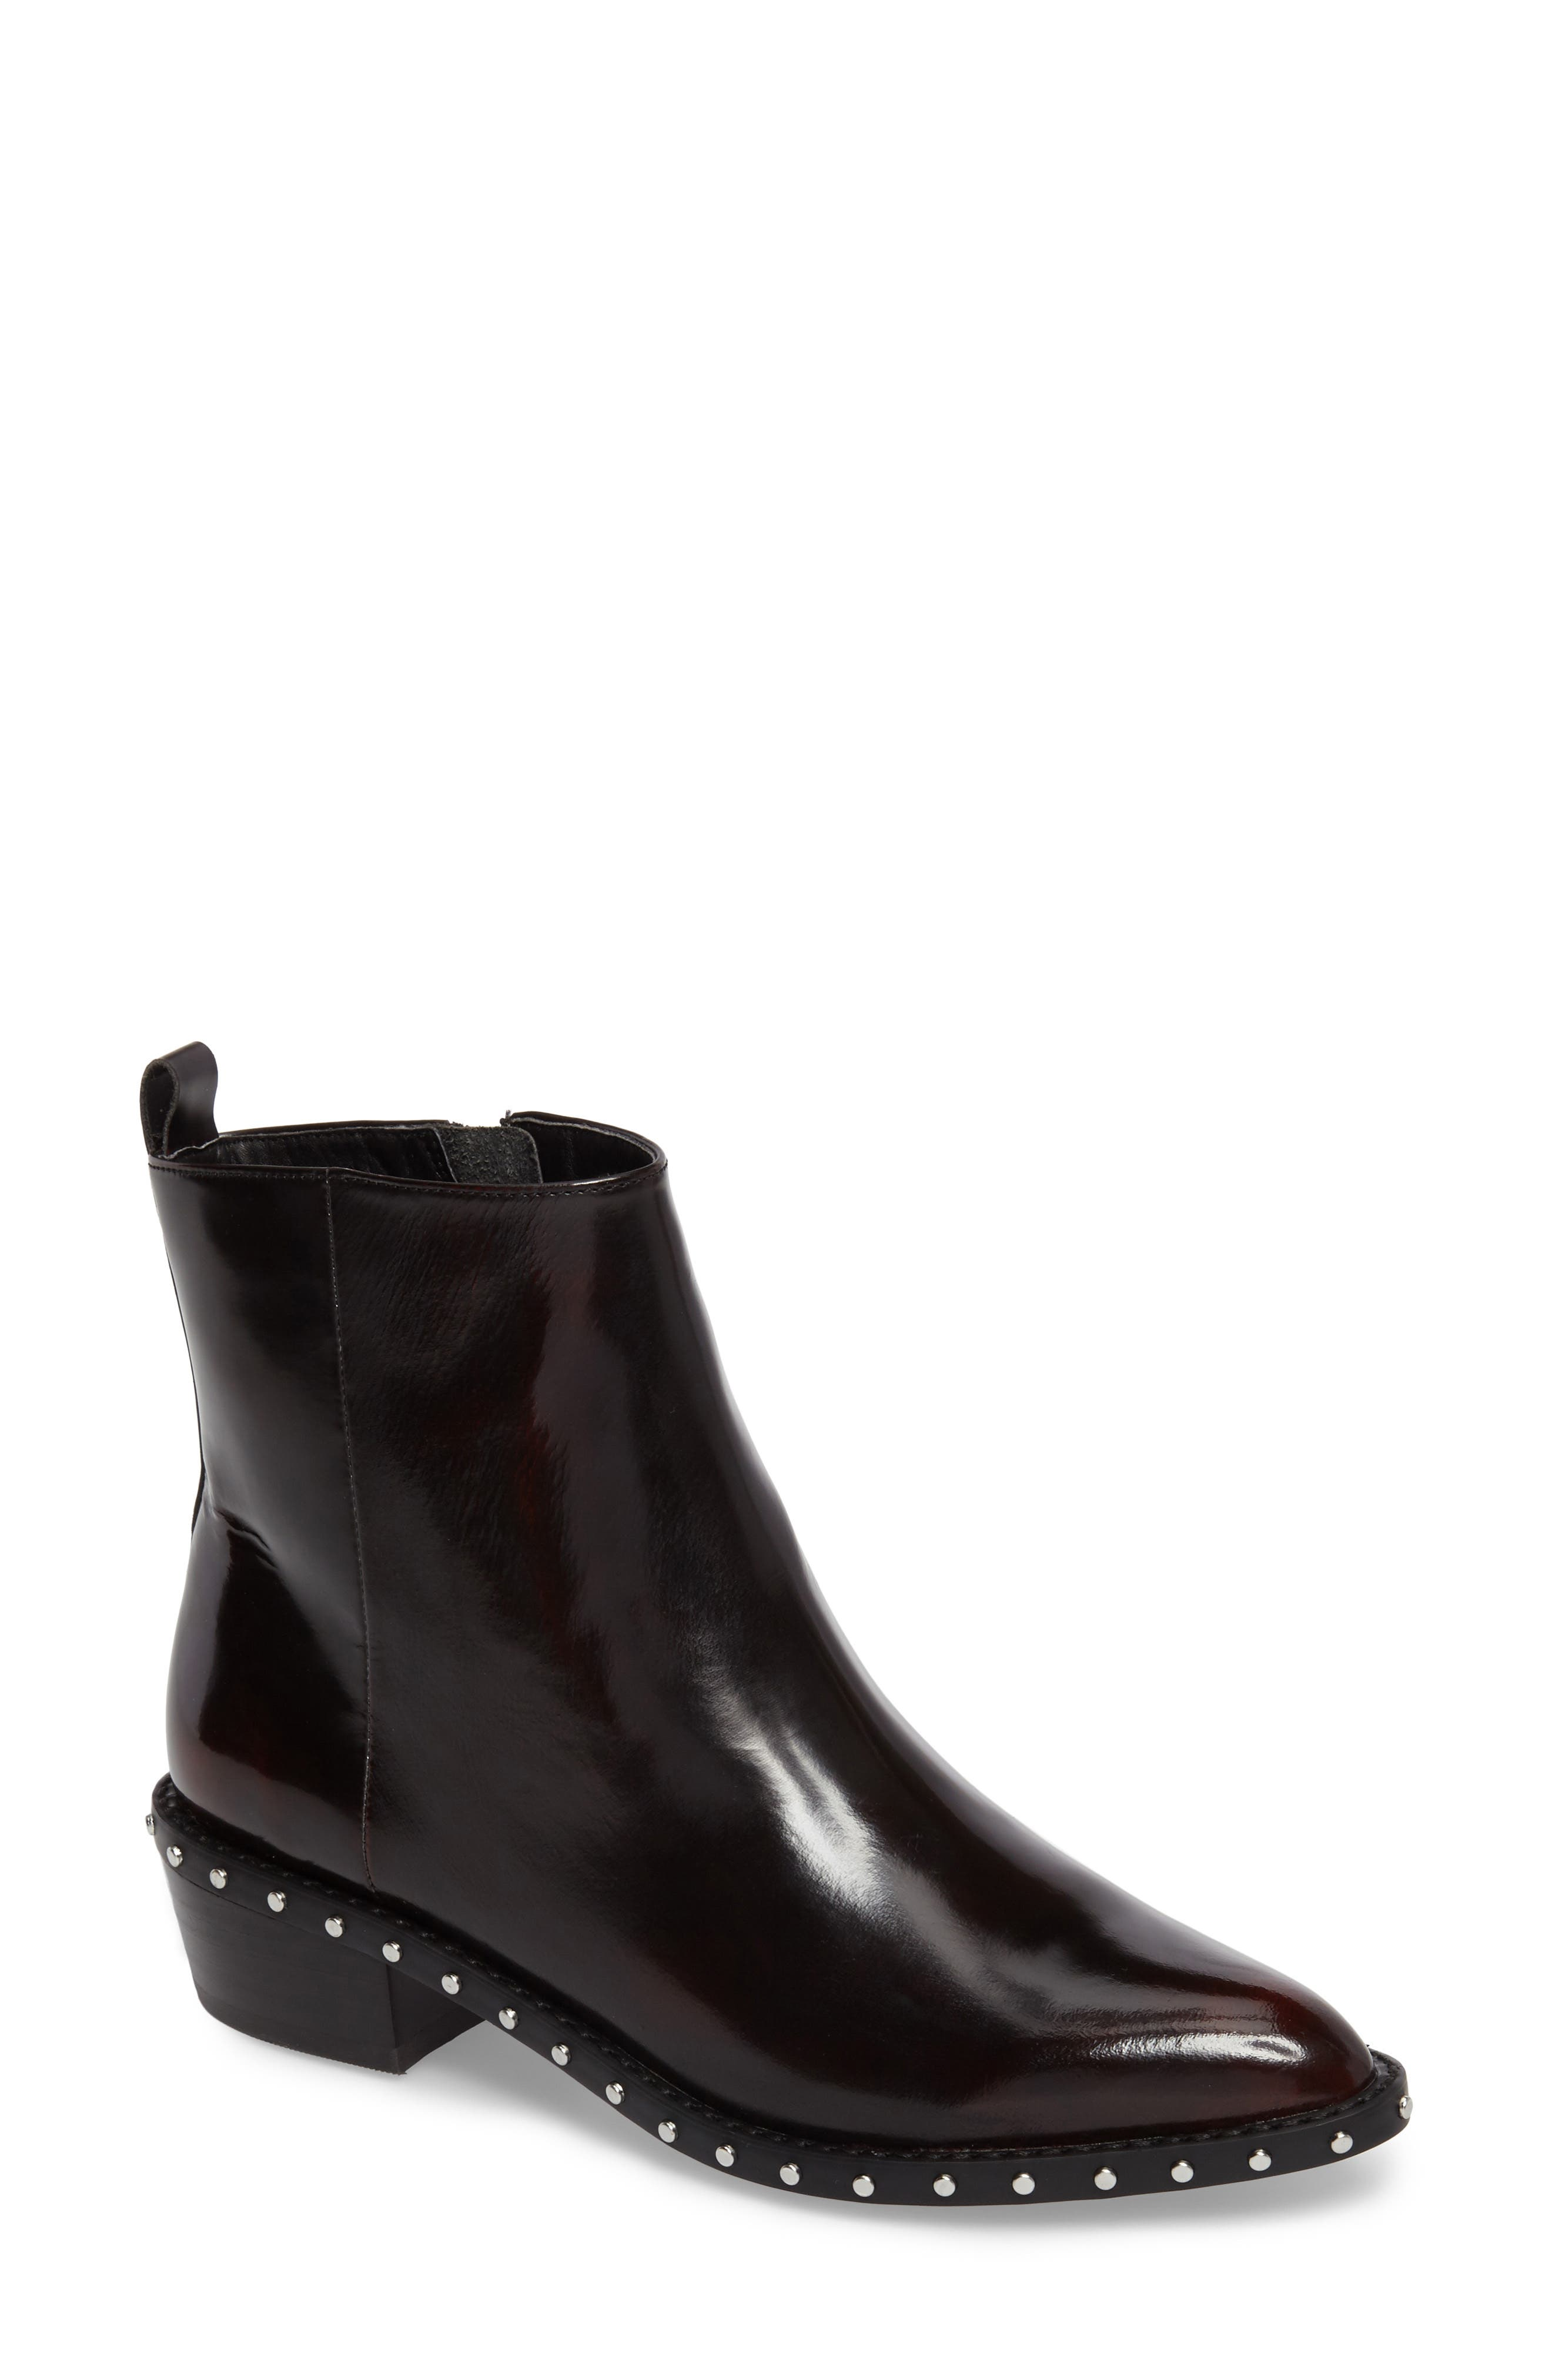 Linea Paolo Tailor Studded Bootie (Women)